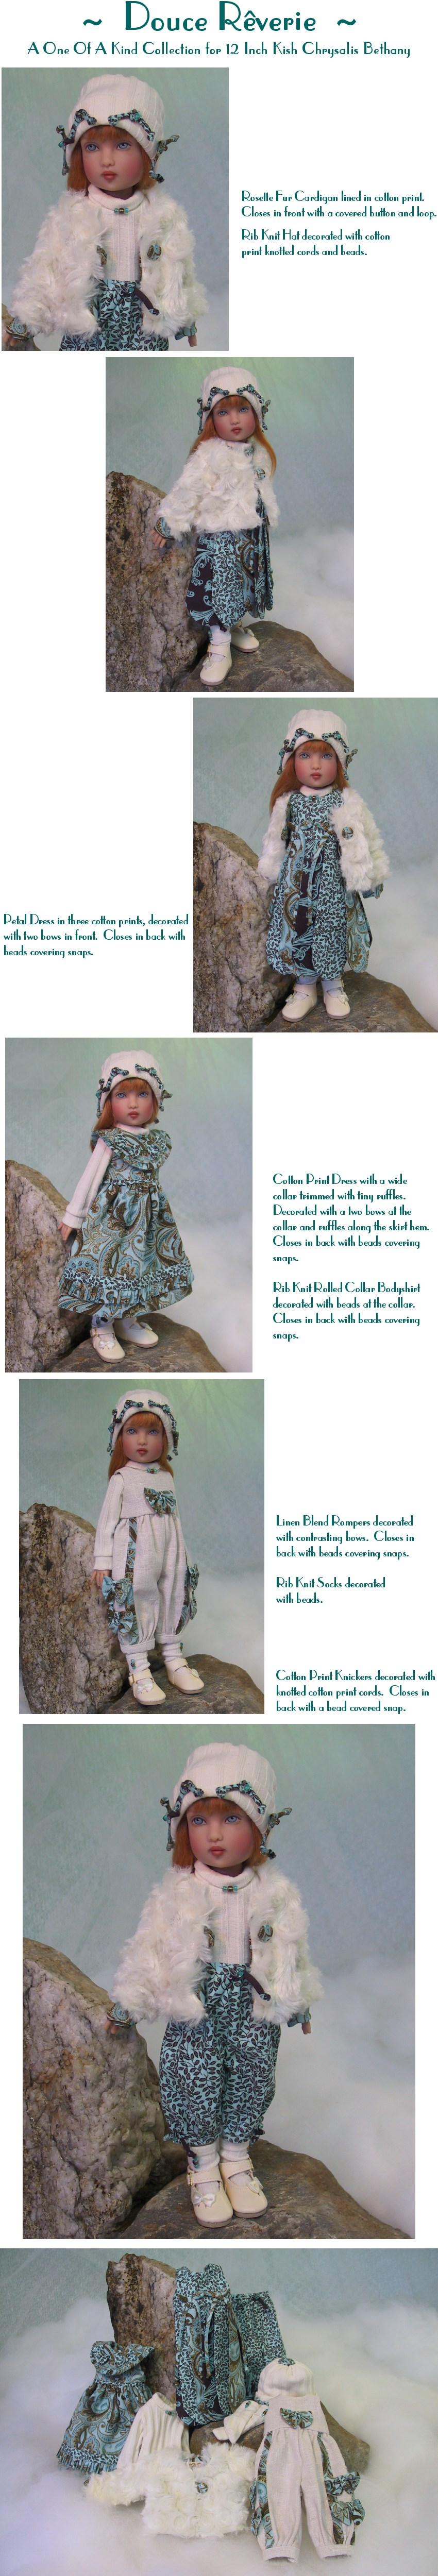 Sweet Daydreams  - a One Of A Kind Collection by MHD Designs - High Resolution Photographs, your patience is appreciated!